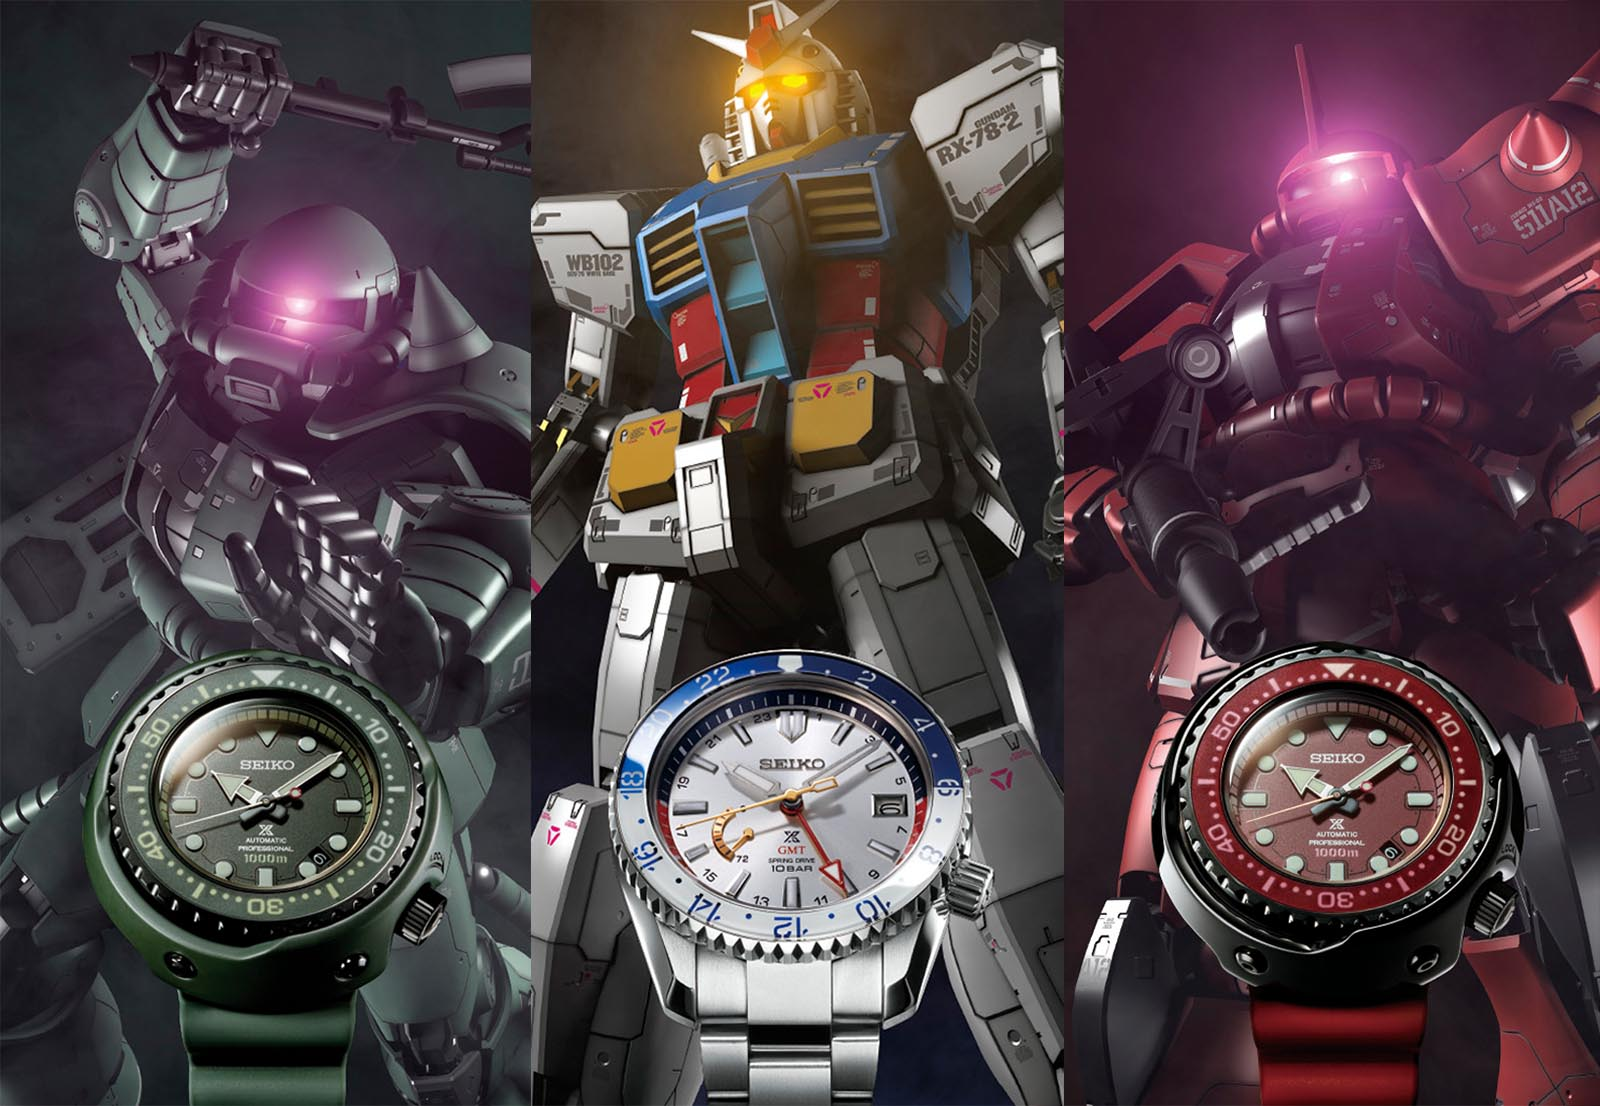 Seiko Mobile Suit Gundam 40th Anniversary Limited Editions